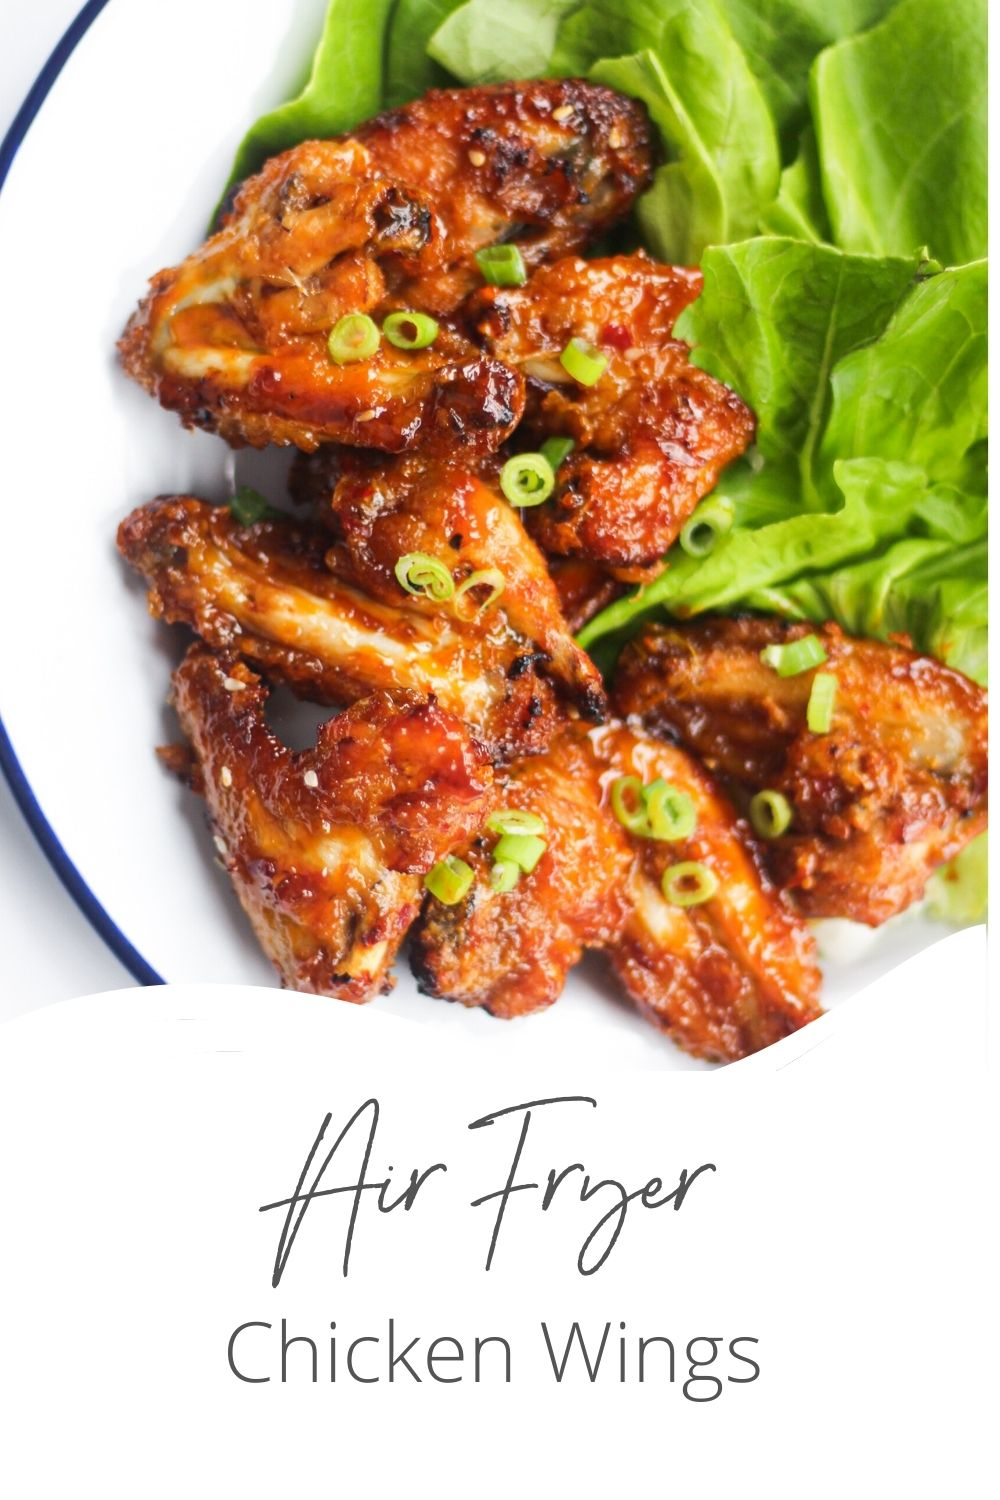 Air Fryer Chicken Wings Recipe with logo.